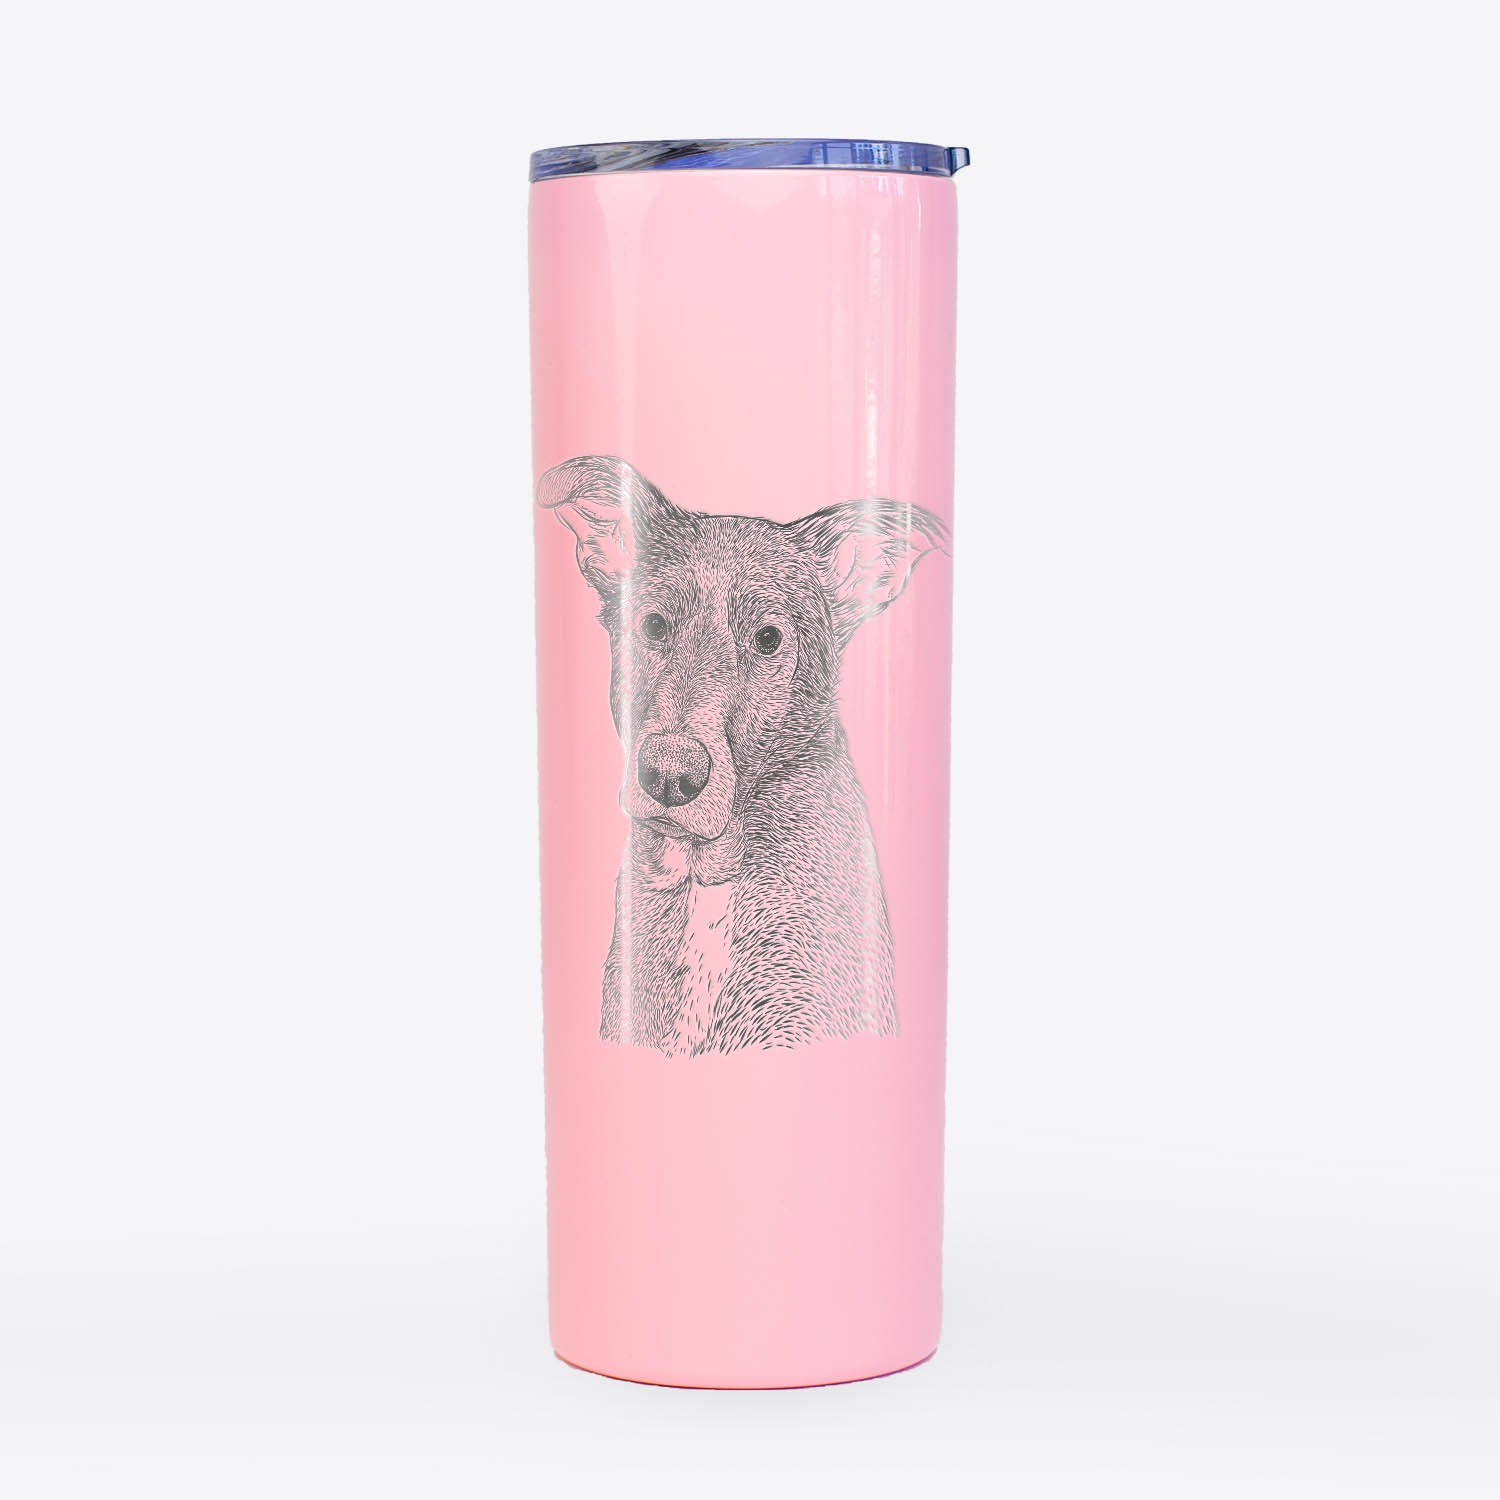 Wilbur the Shepherd Mix - 20oz Skinny Tumbler